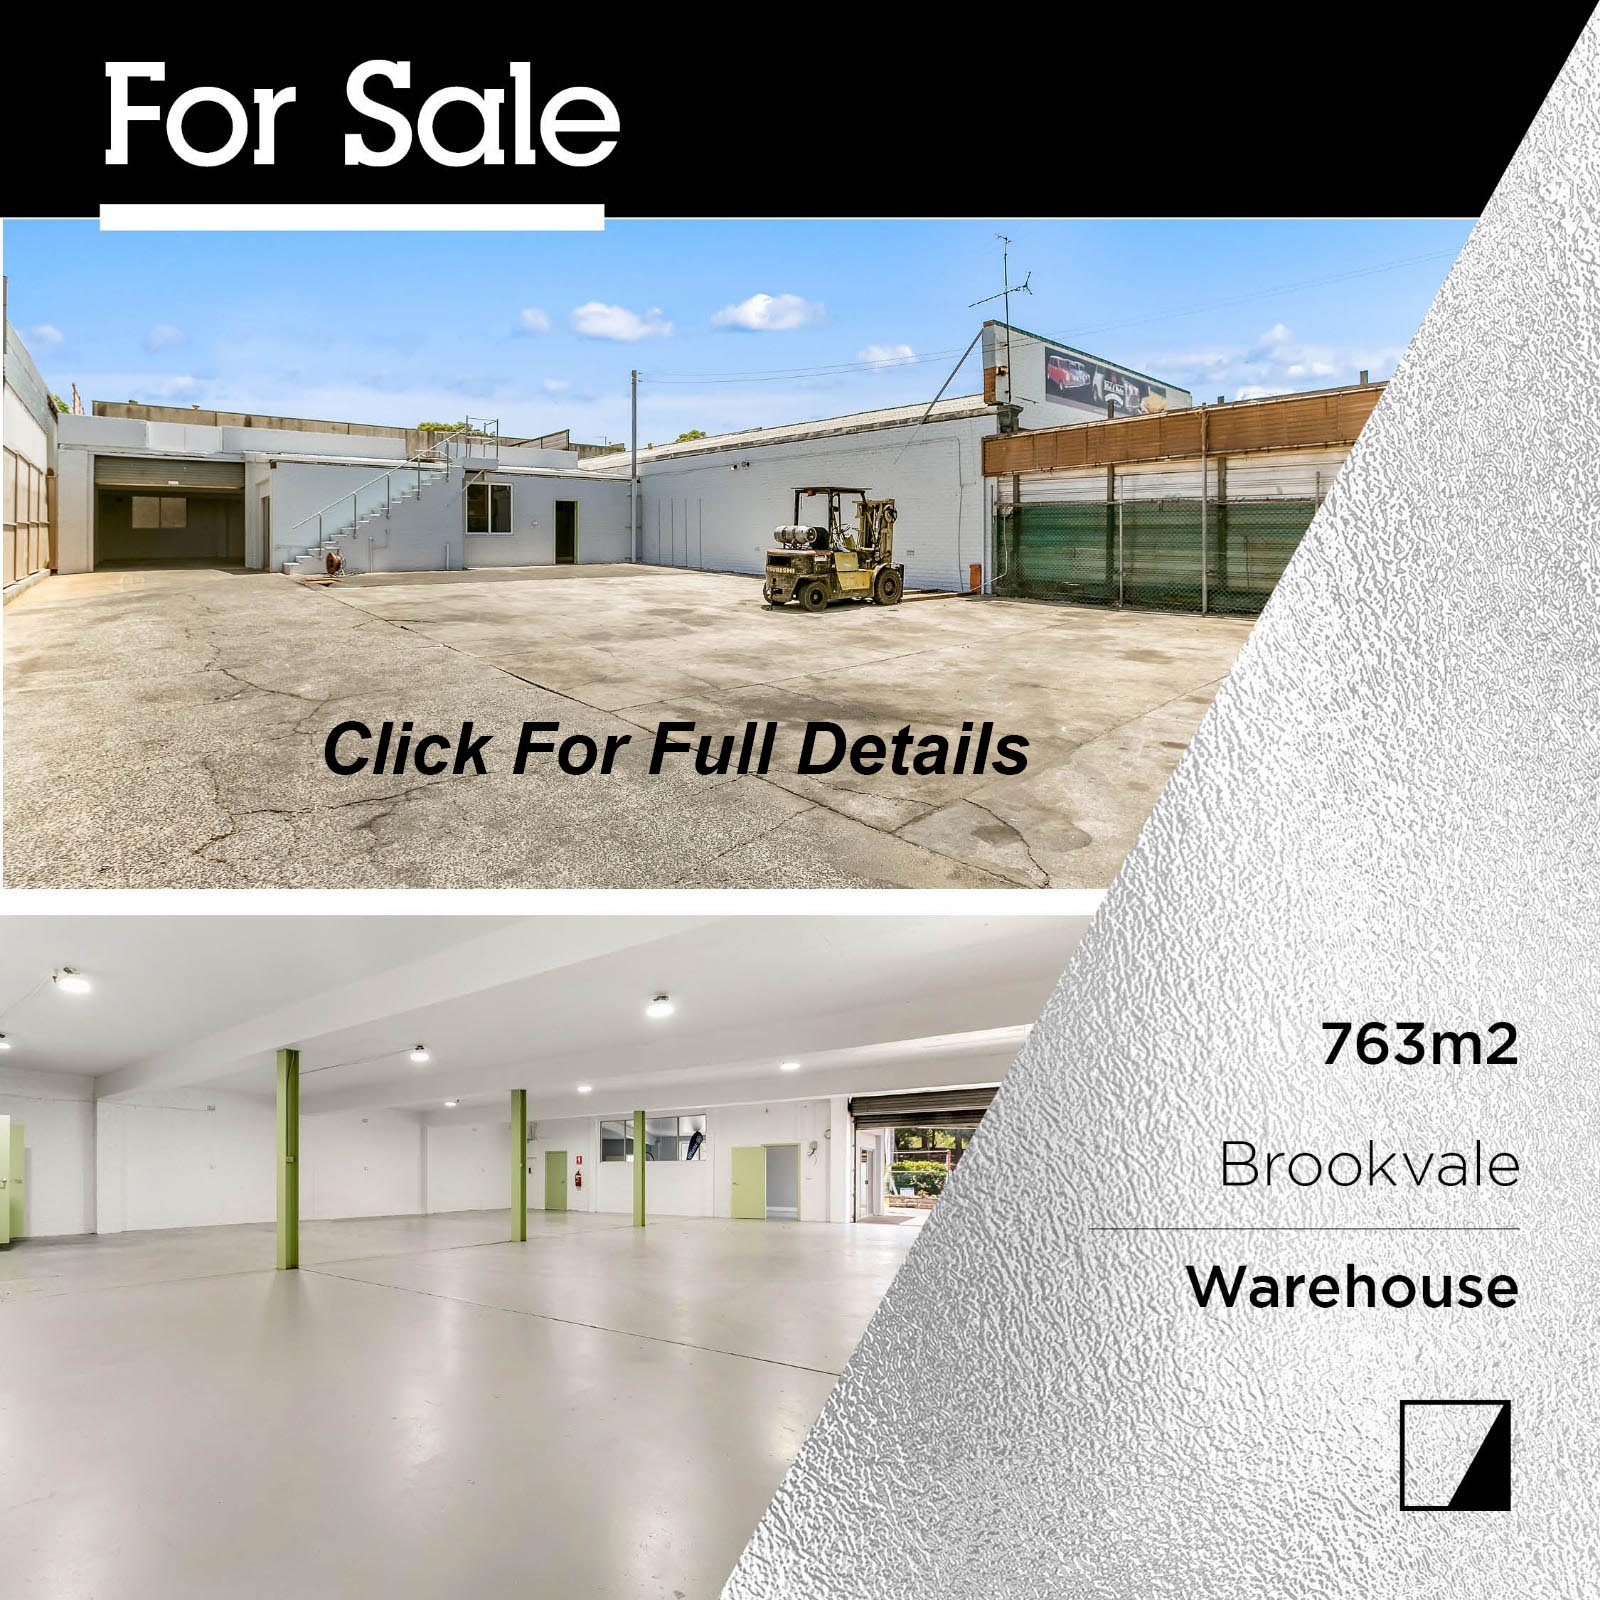 commercial real estate  218 Harbord Road Brookvale Industrial Warehouse for sale northern beaches